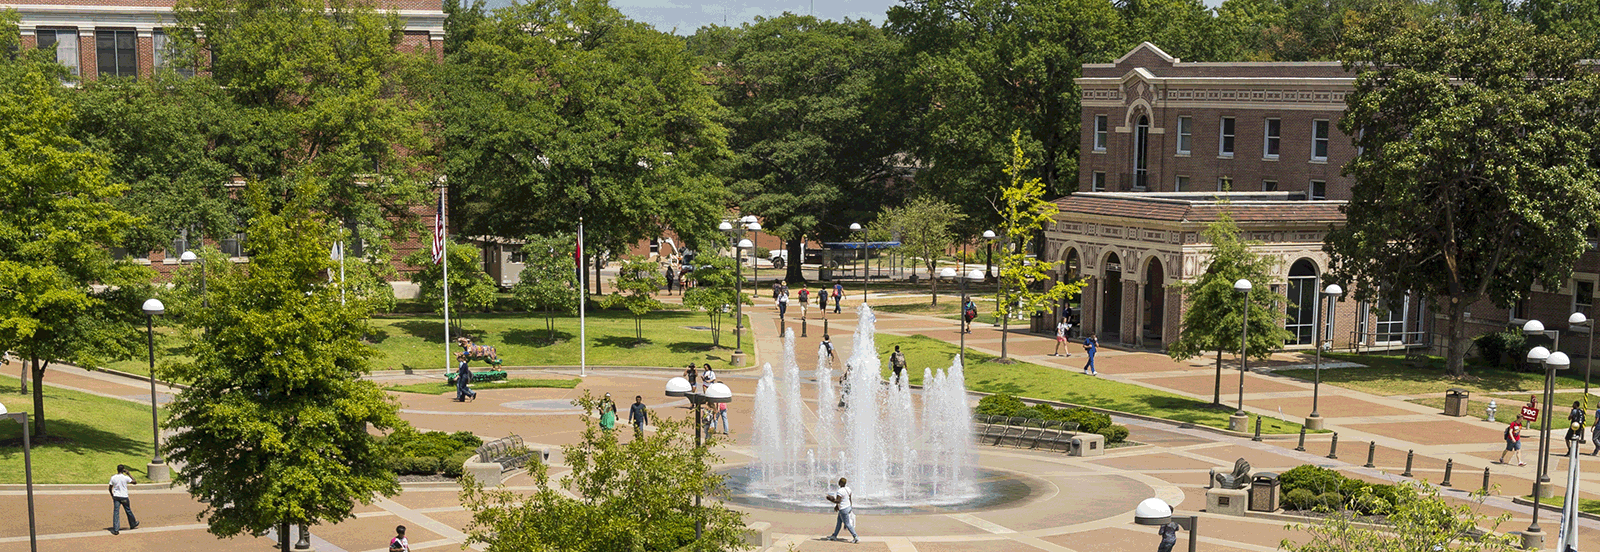 College offices are located in Scates Hall by the Student Plaza and fountain.